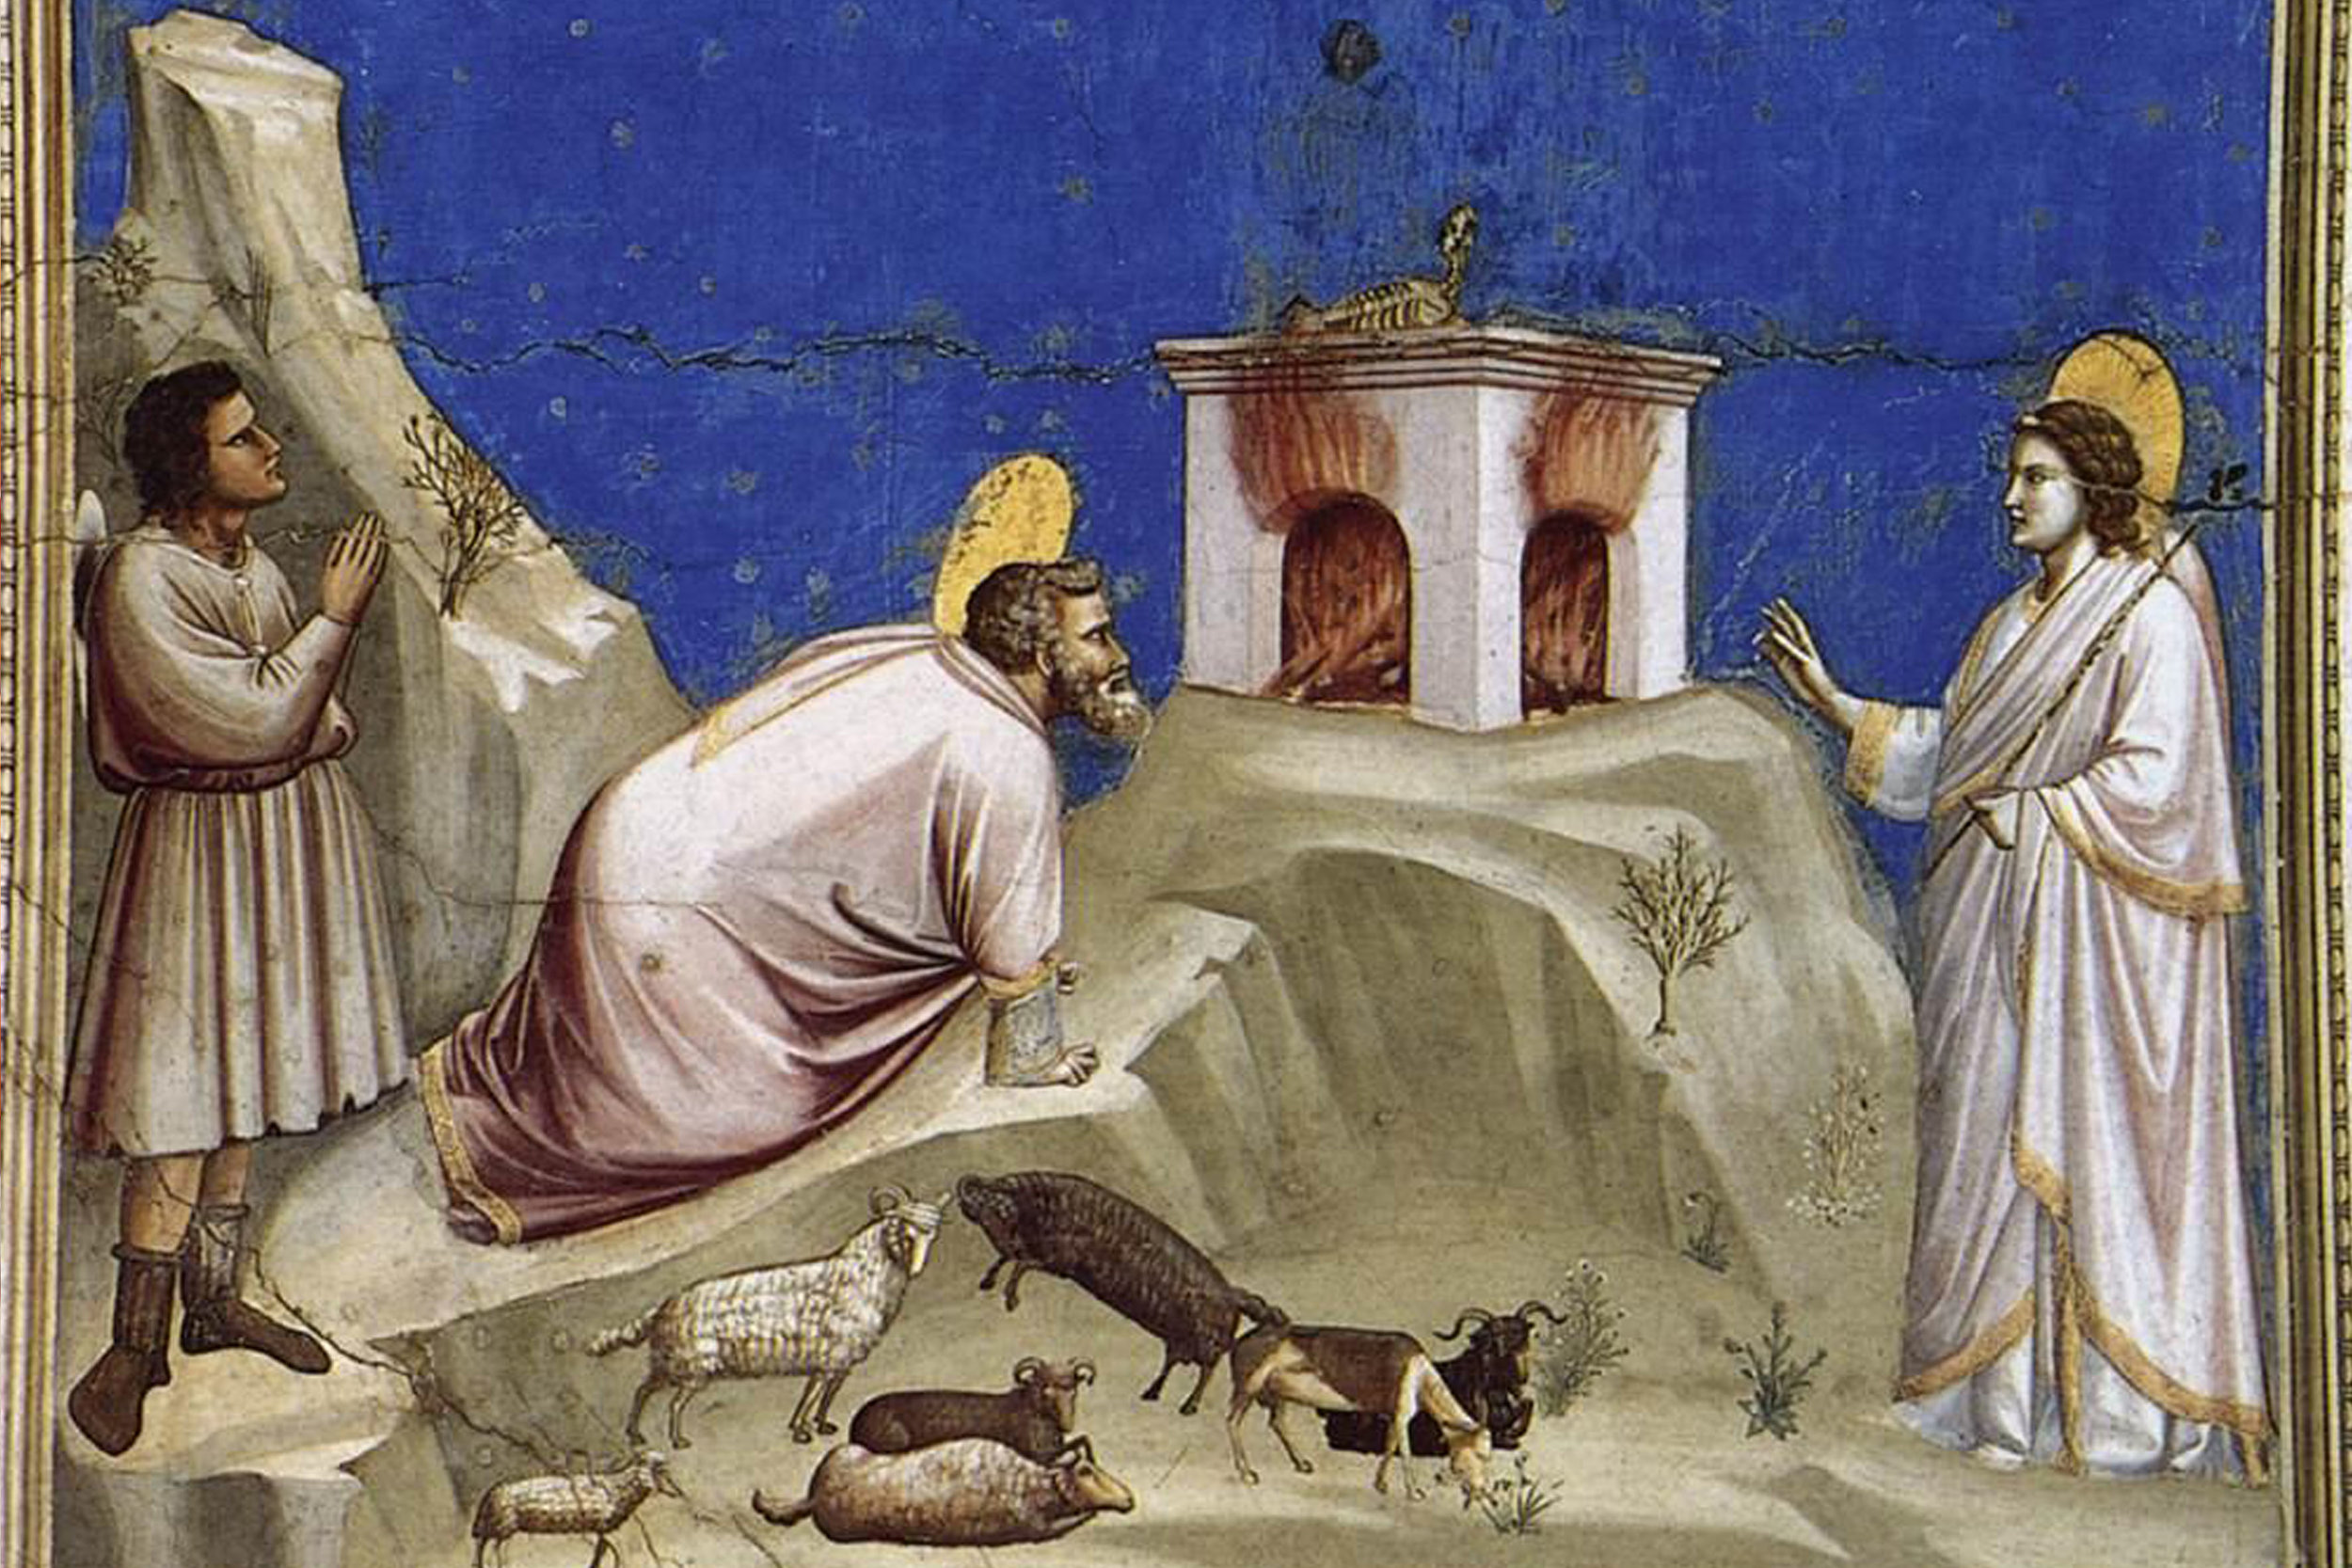 Lecture – Virtual Reality from Giotto to Grand Theft Auto